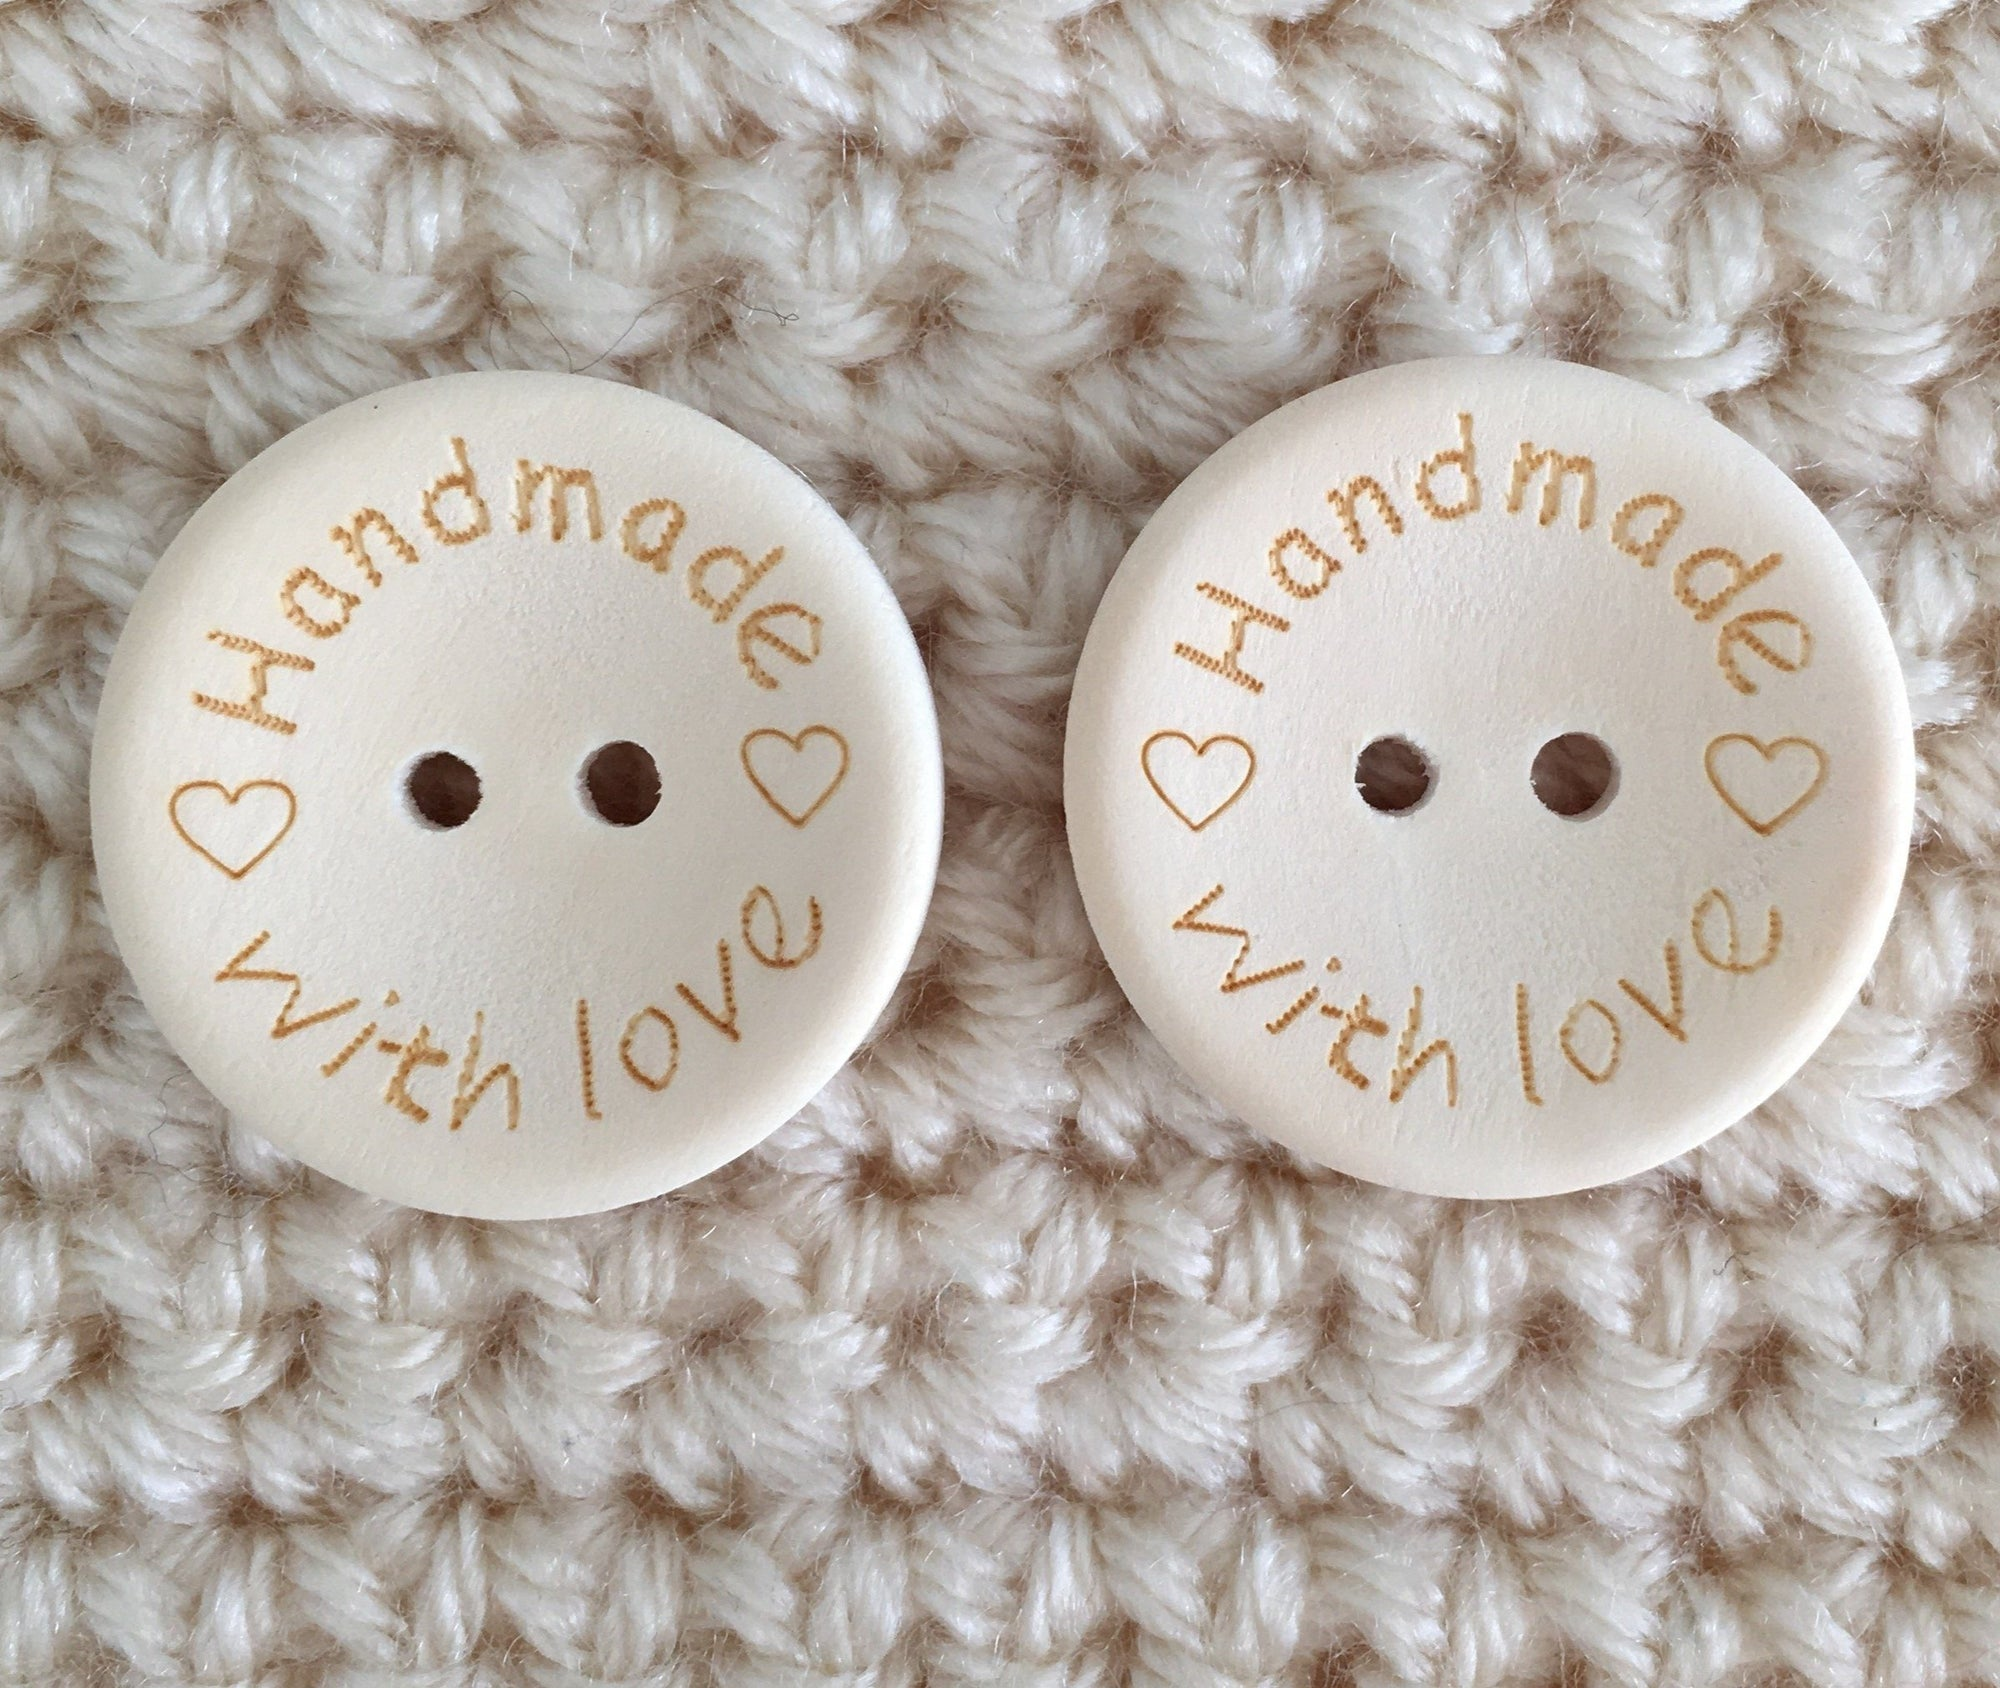 'Handmade with Love' Buttons